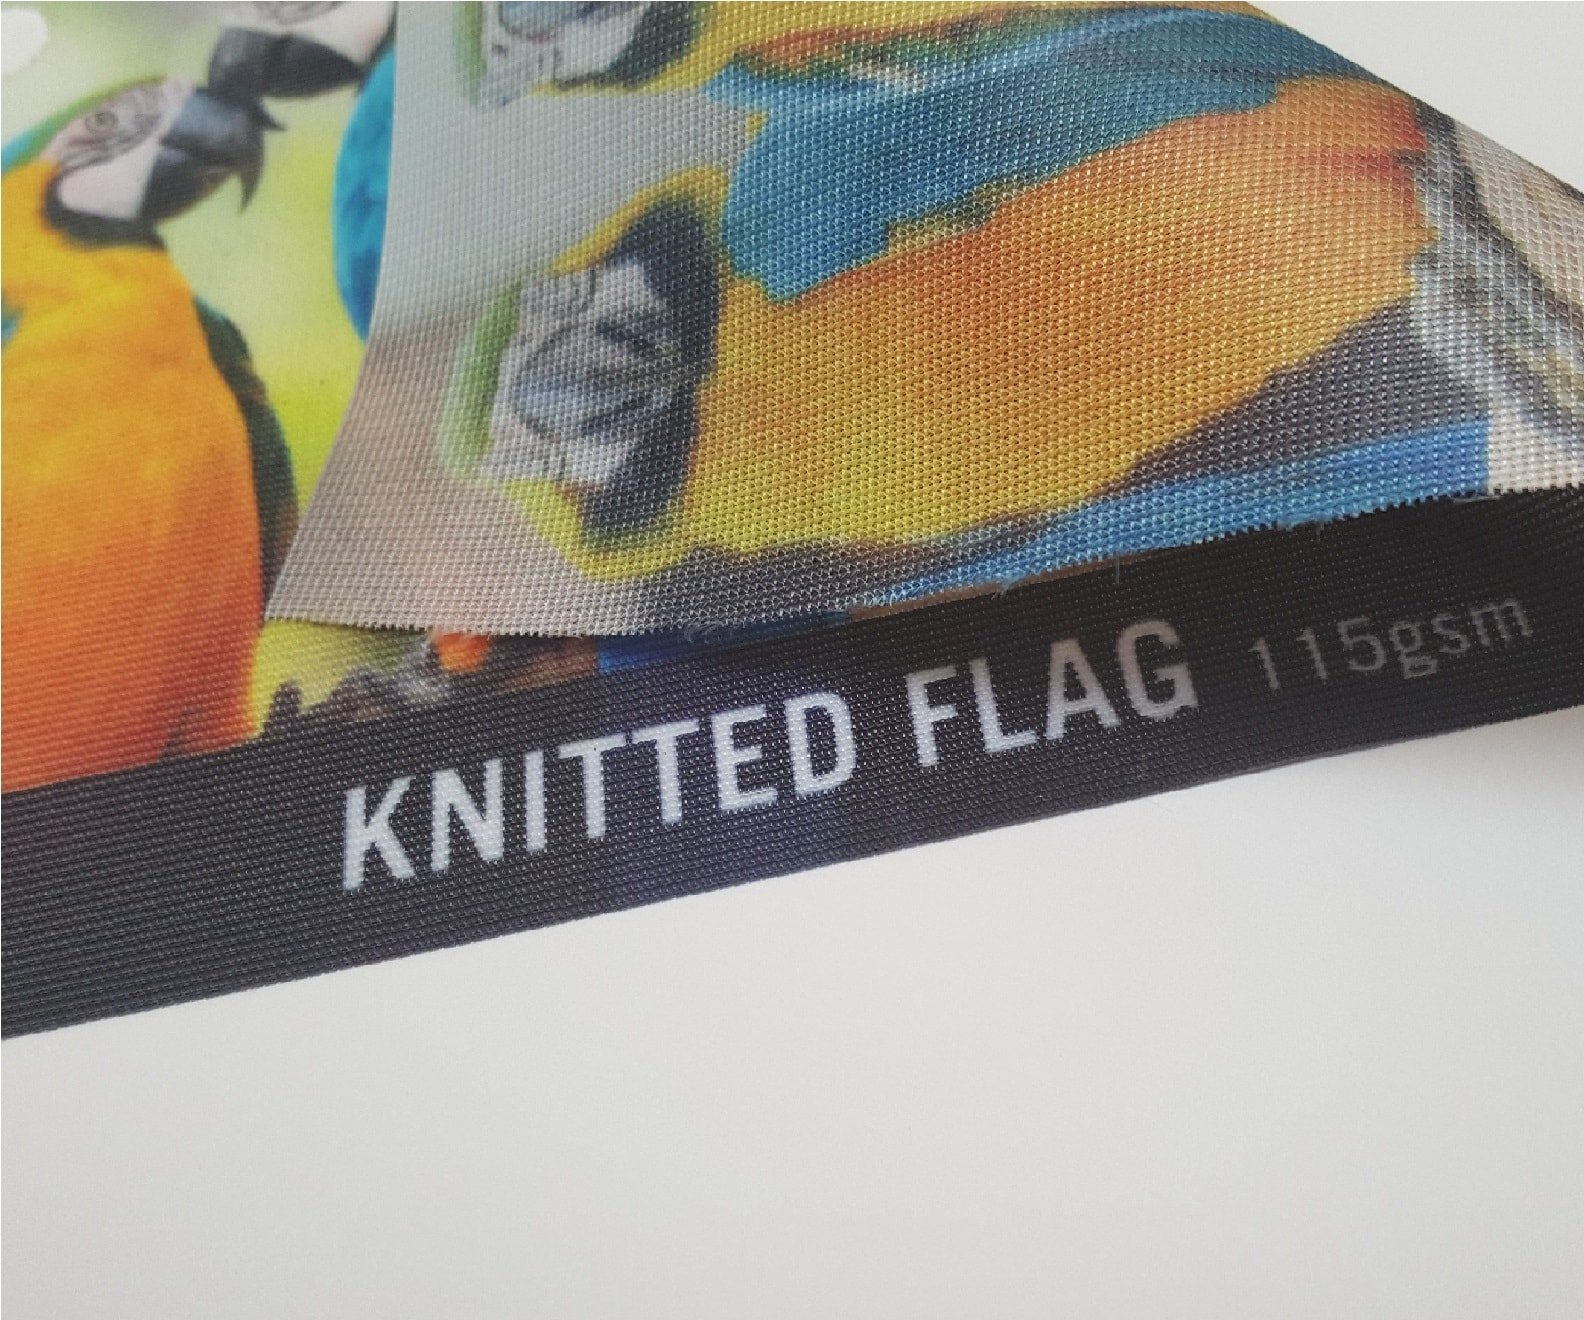 Knitted Flag 115 um Printing UK, Next Day Delivery - www.ontimeprint.co.uk